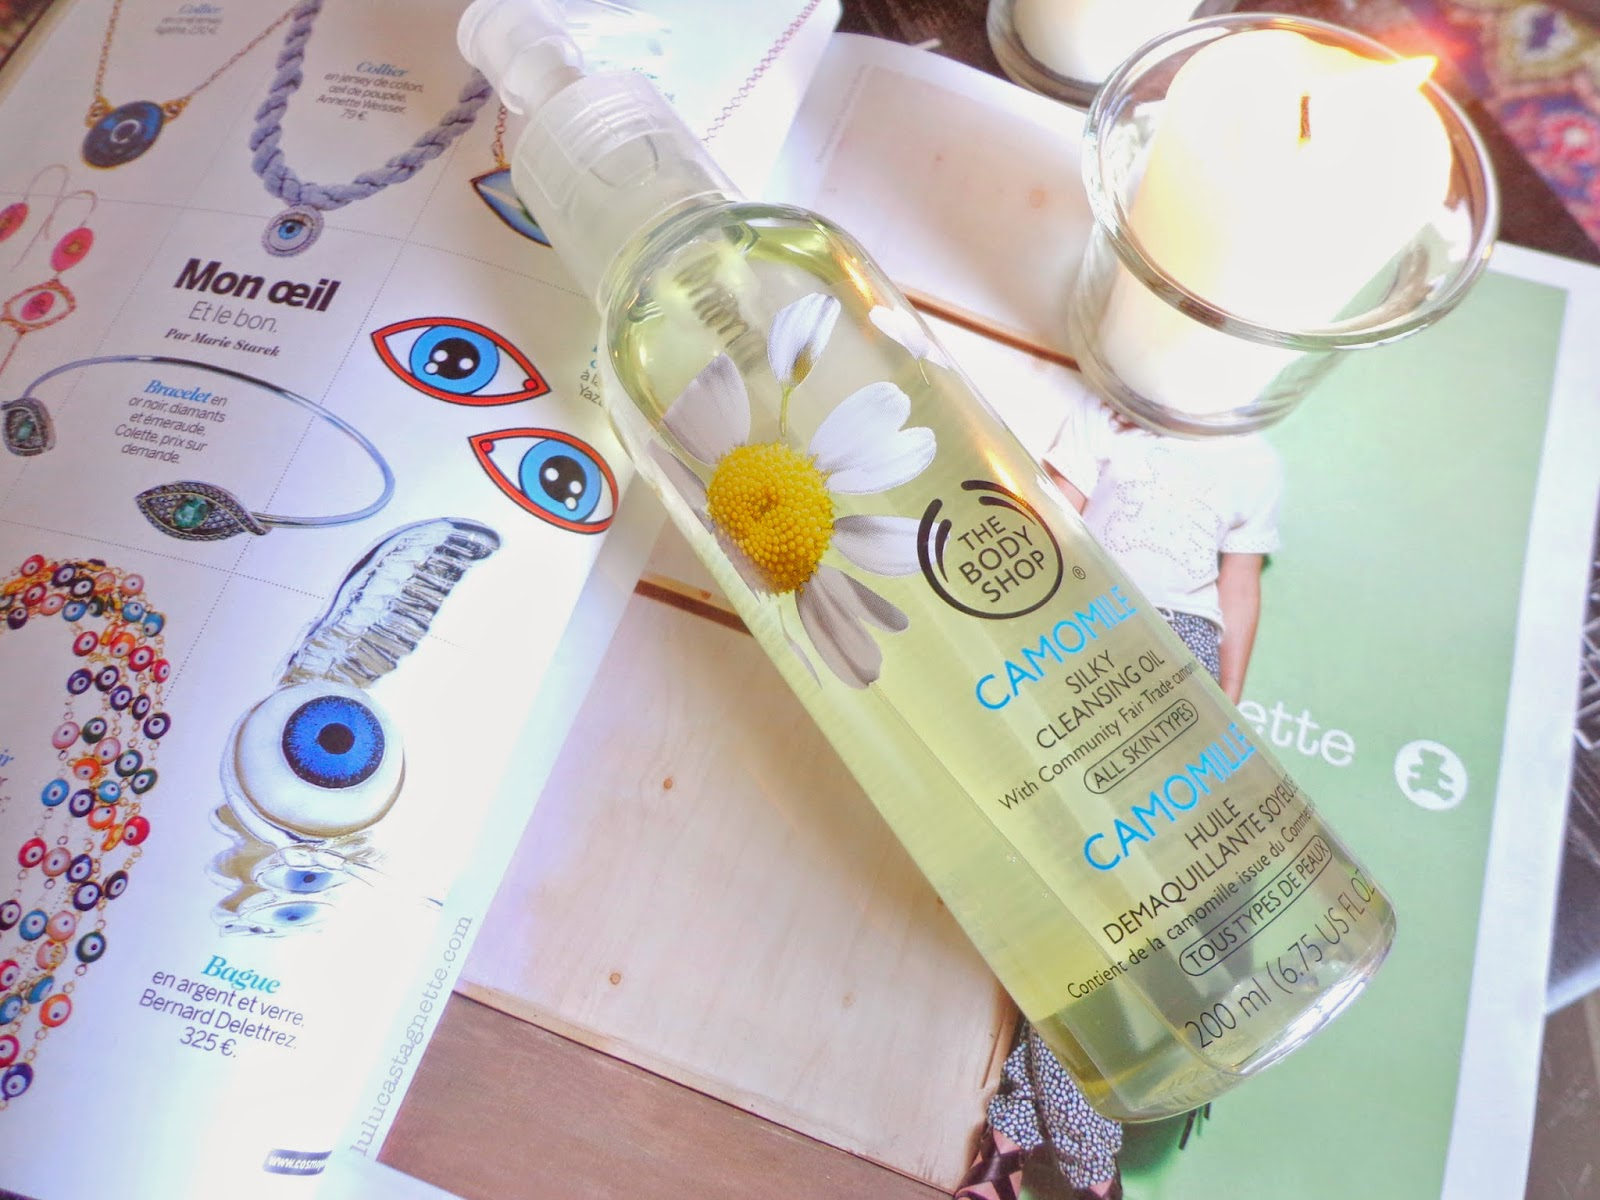 camomile cleansing oil